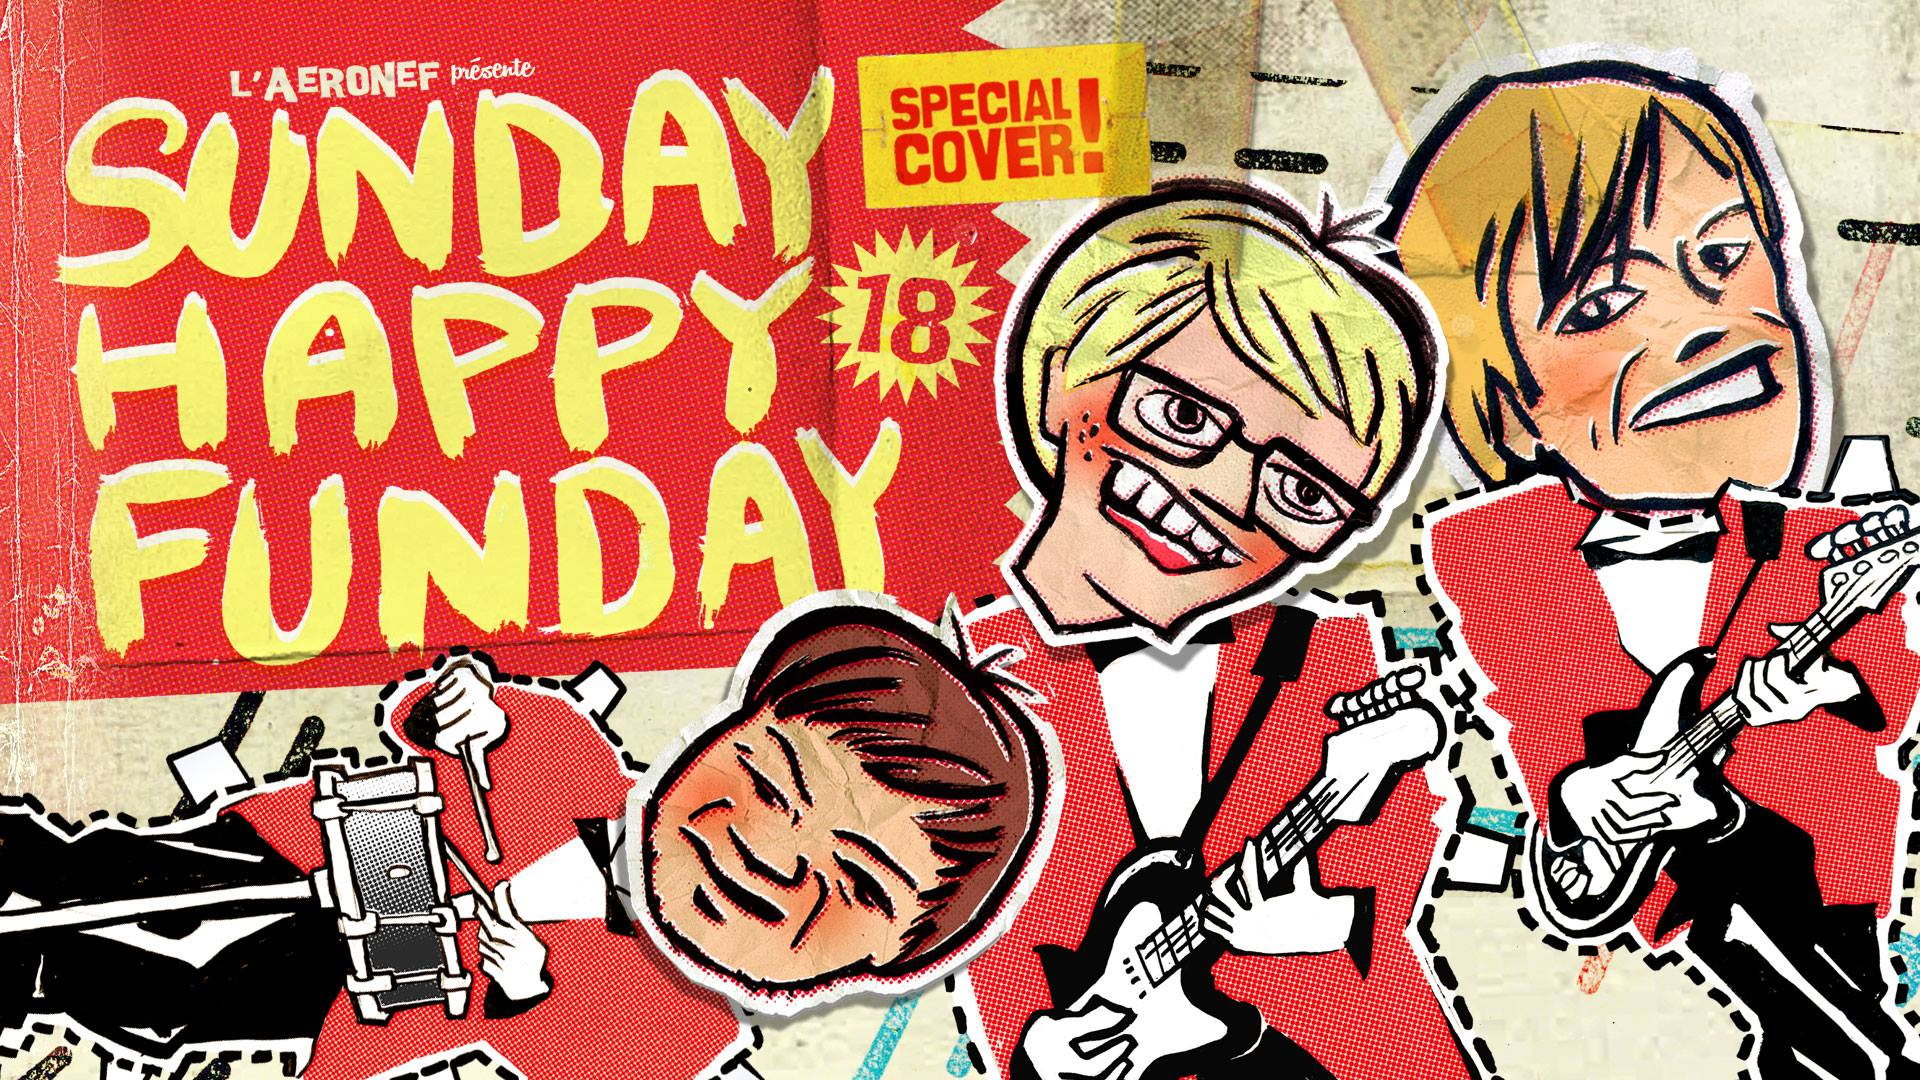 Sunday Happy Funday #18 Spécial Cover